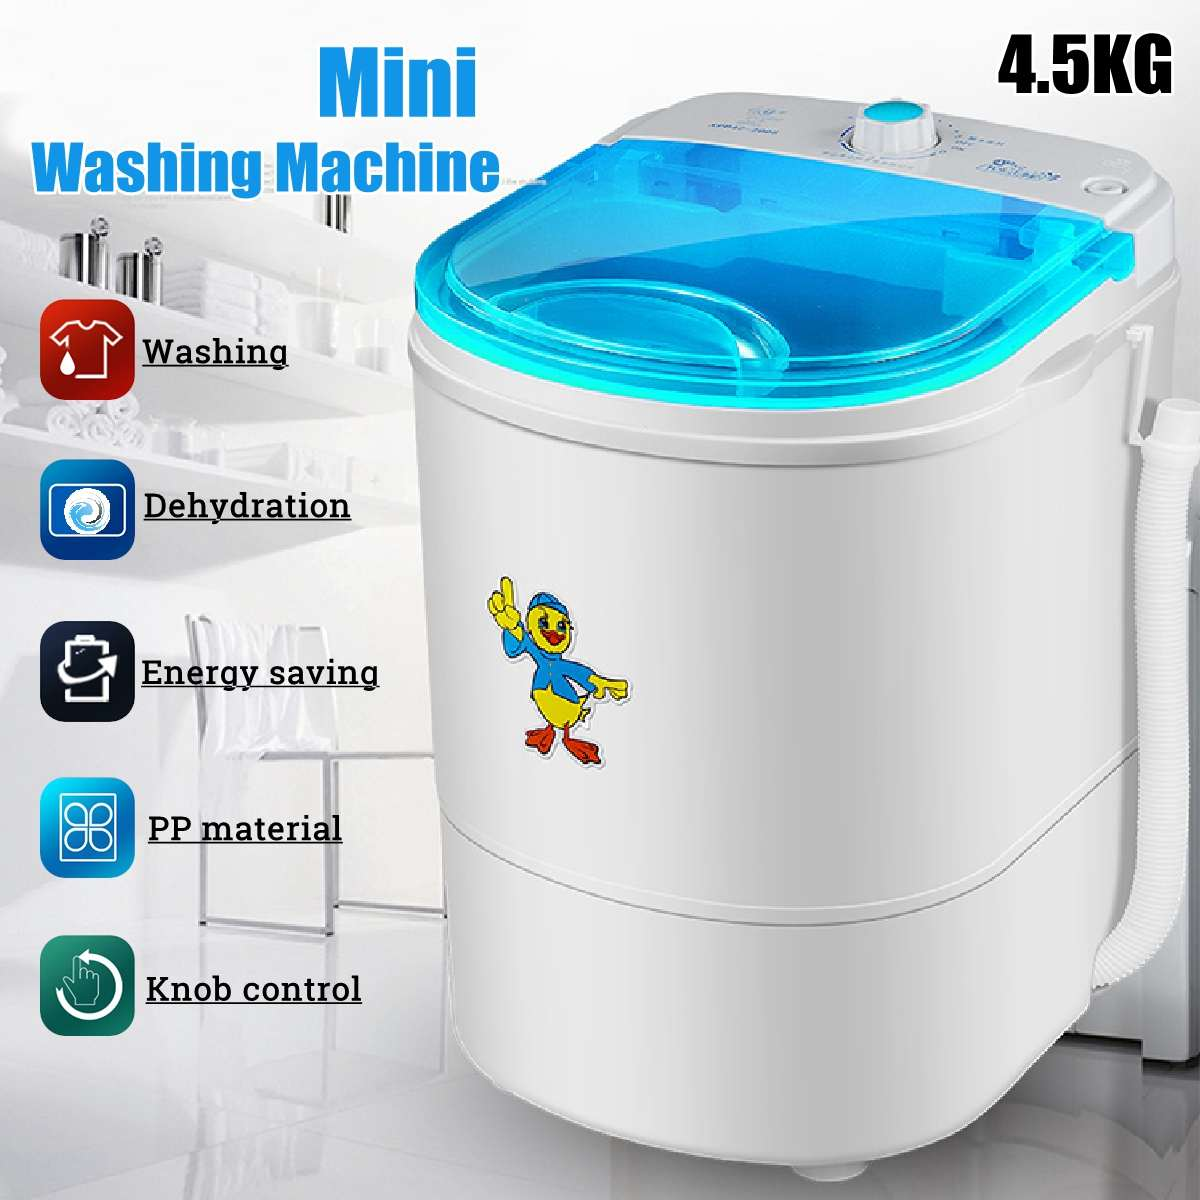 Washing-Machine Compact Washer Single-Barrel-Washer Spin Mini Portable Lb 225W For Low-Noise